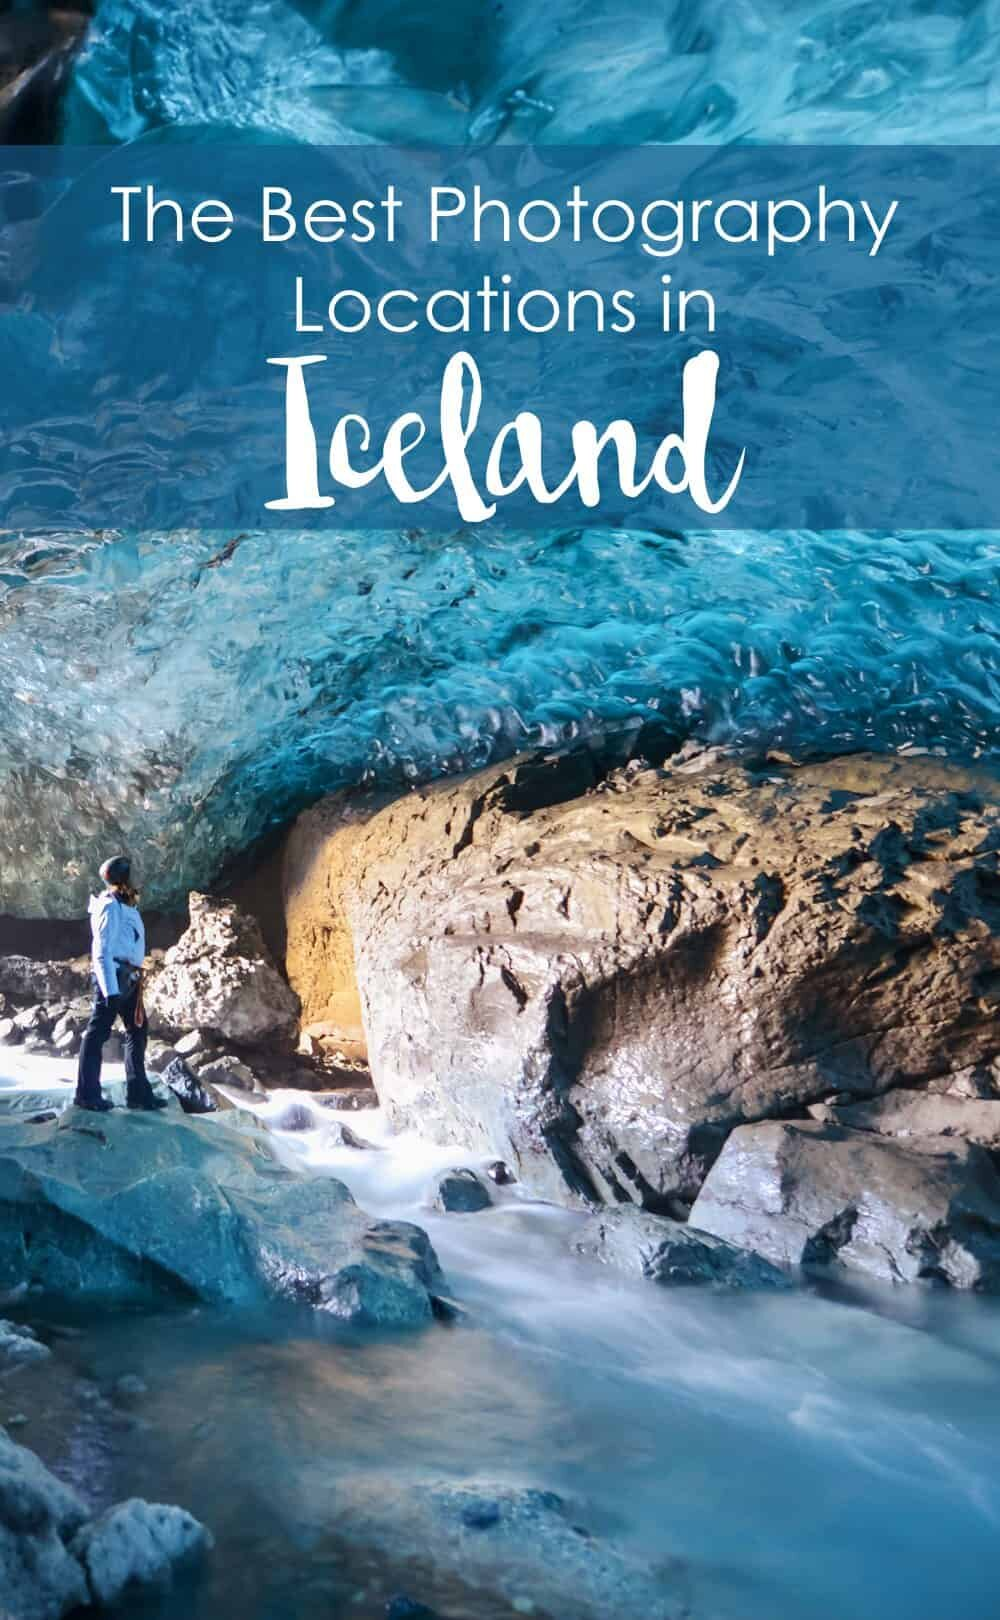 The Best Photography Locations in Iceland - South Coast by The Wandering Lens